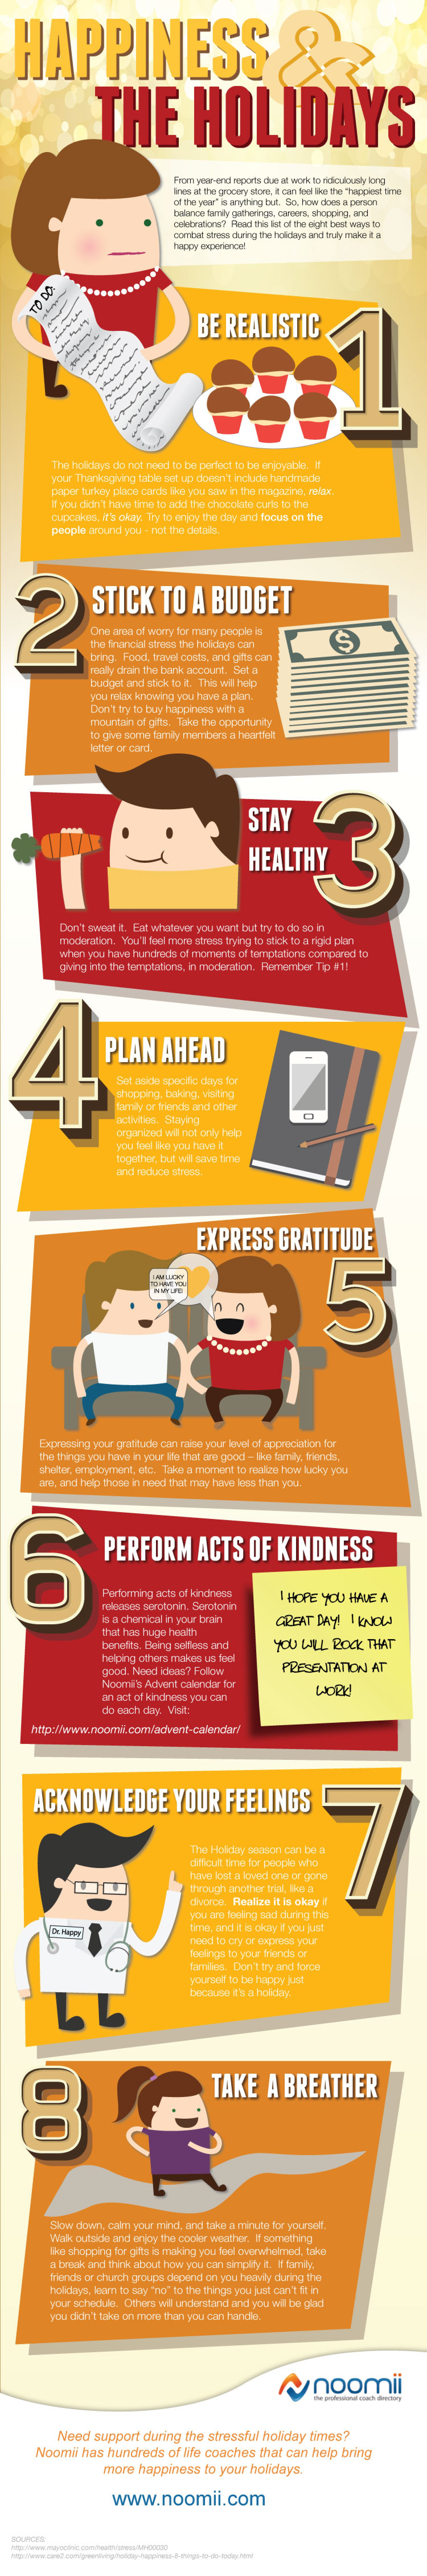 how-to-deal-with-holiday-stress_52835e1a11f94_w1500